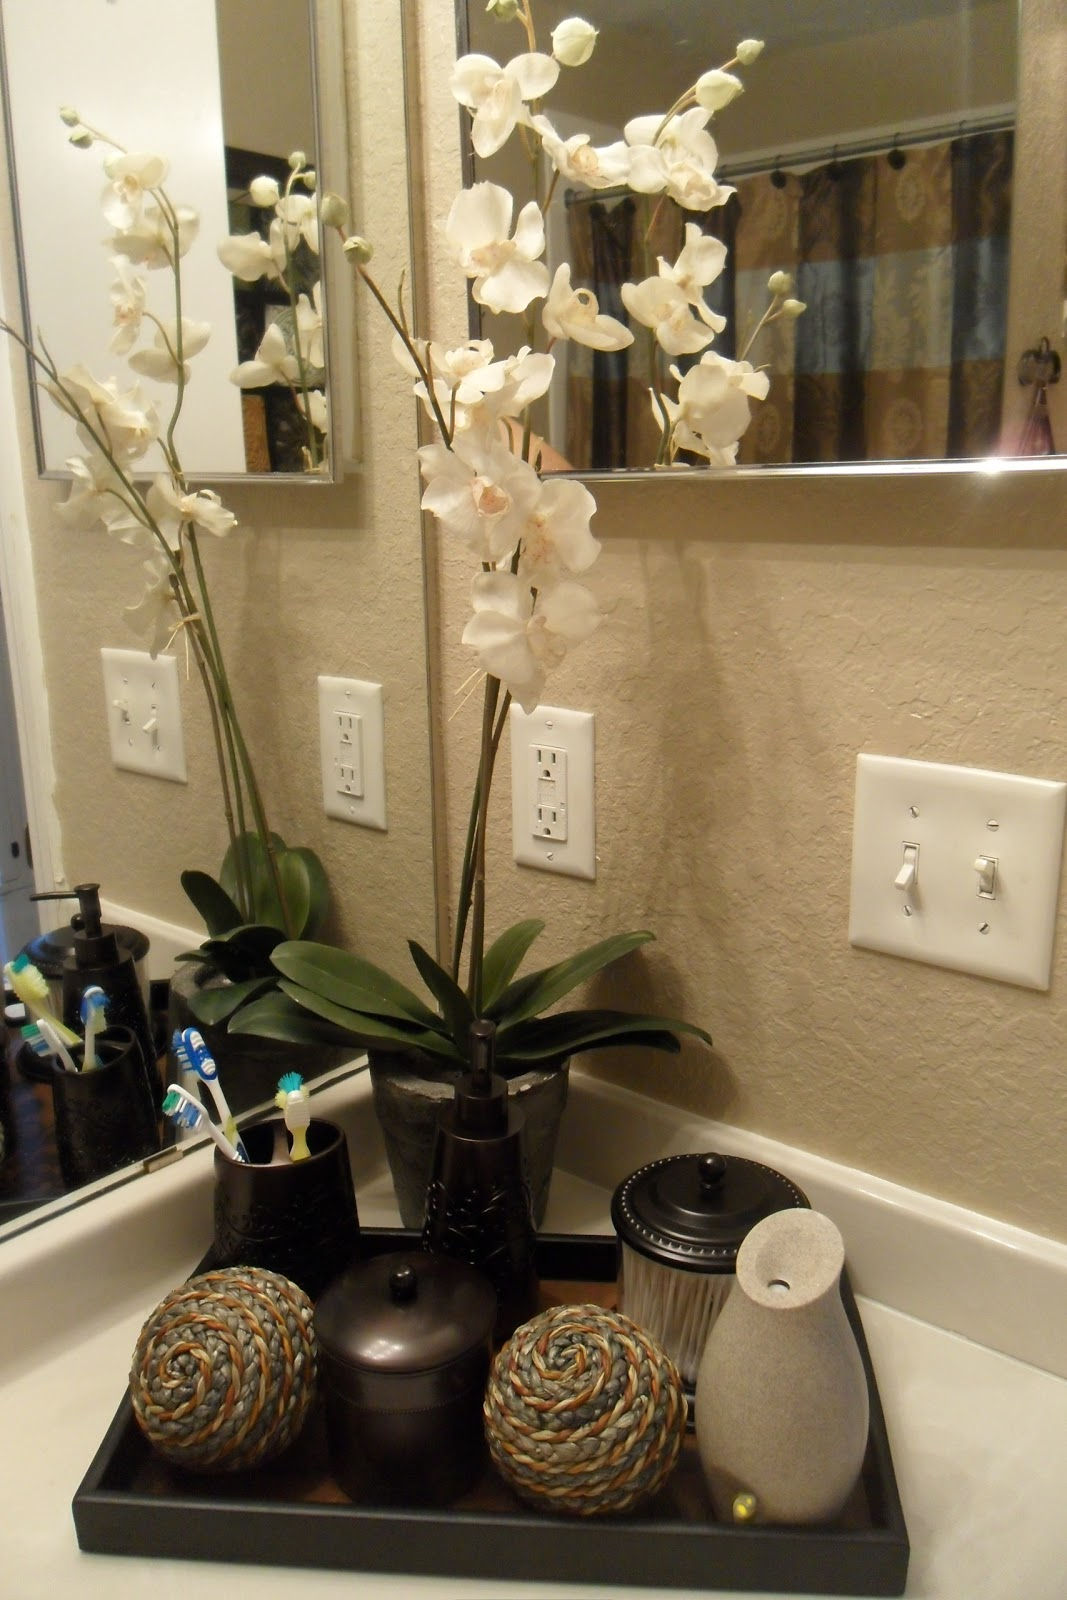 Bathroom Decor Ideas Of Decorating With One Pink Chic Went Shopping And Redone My